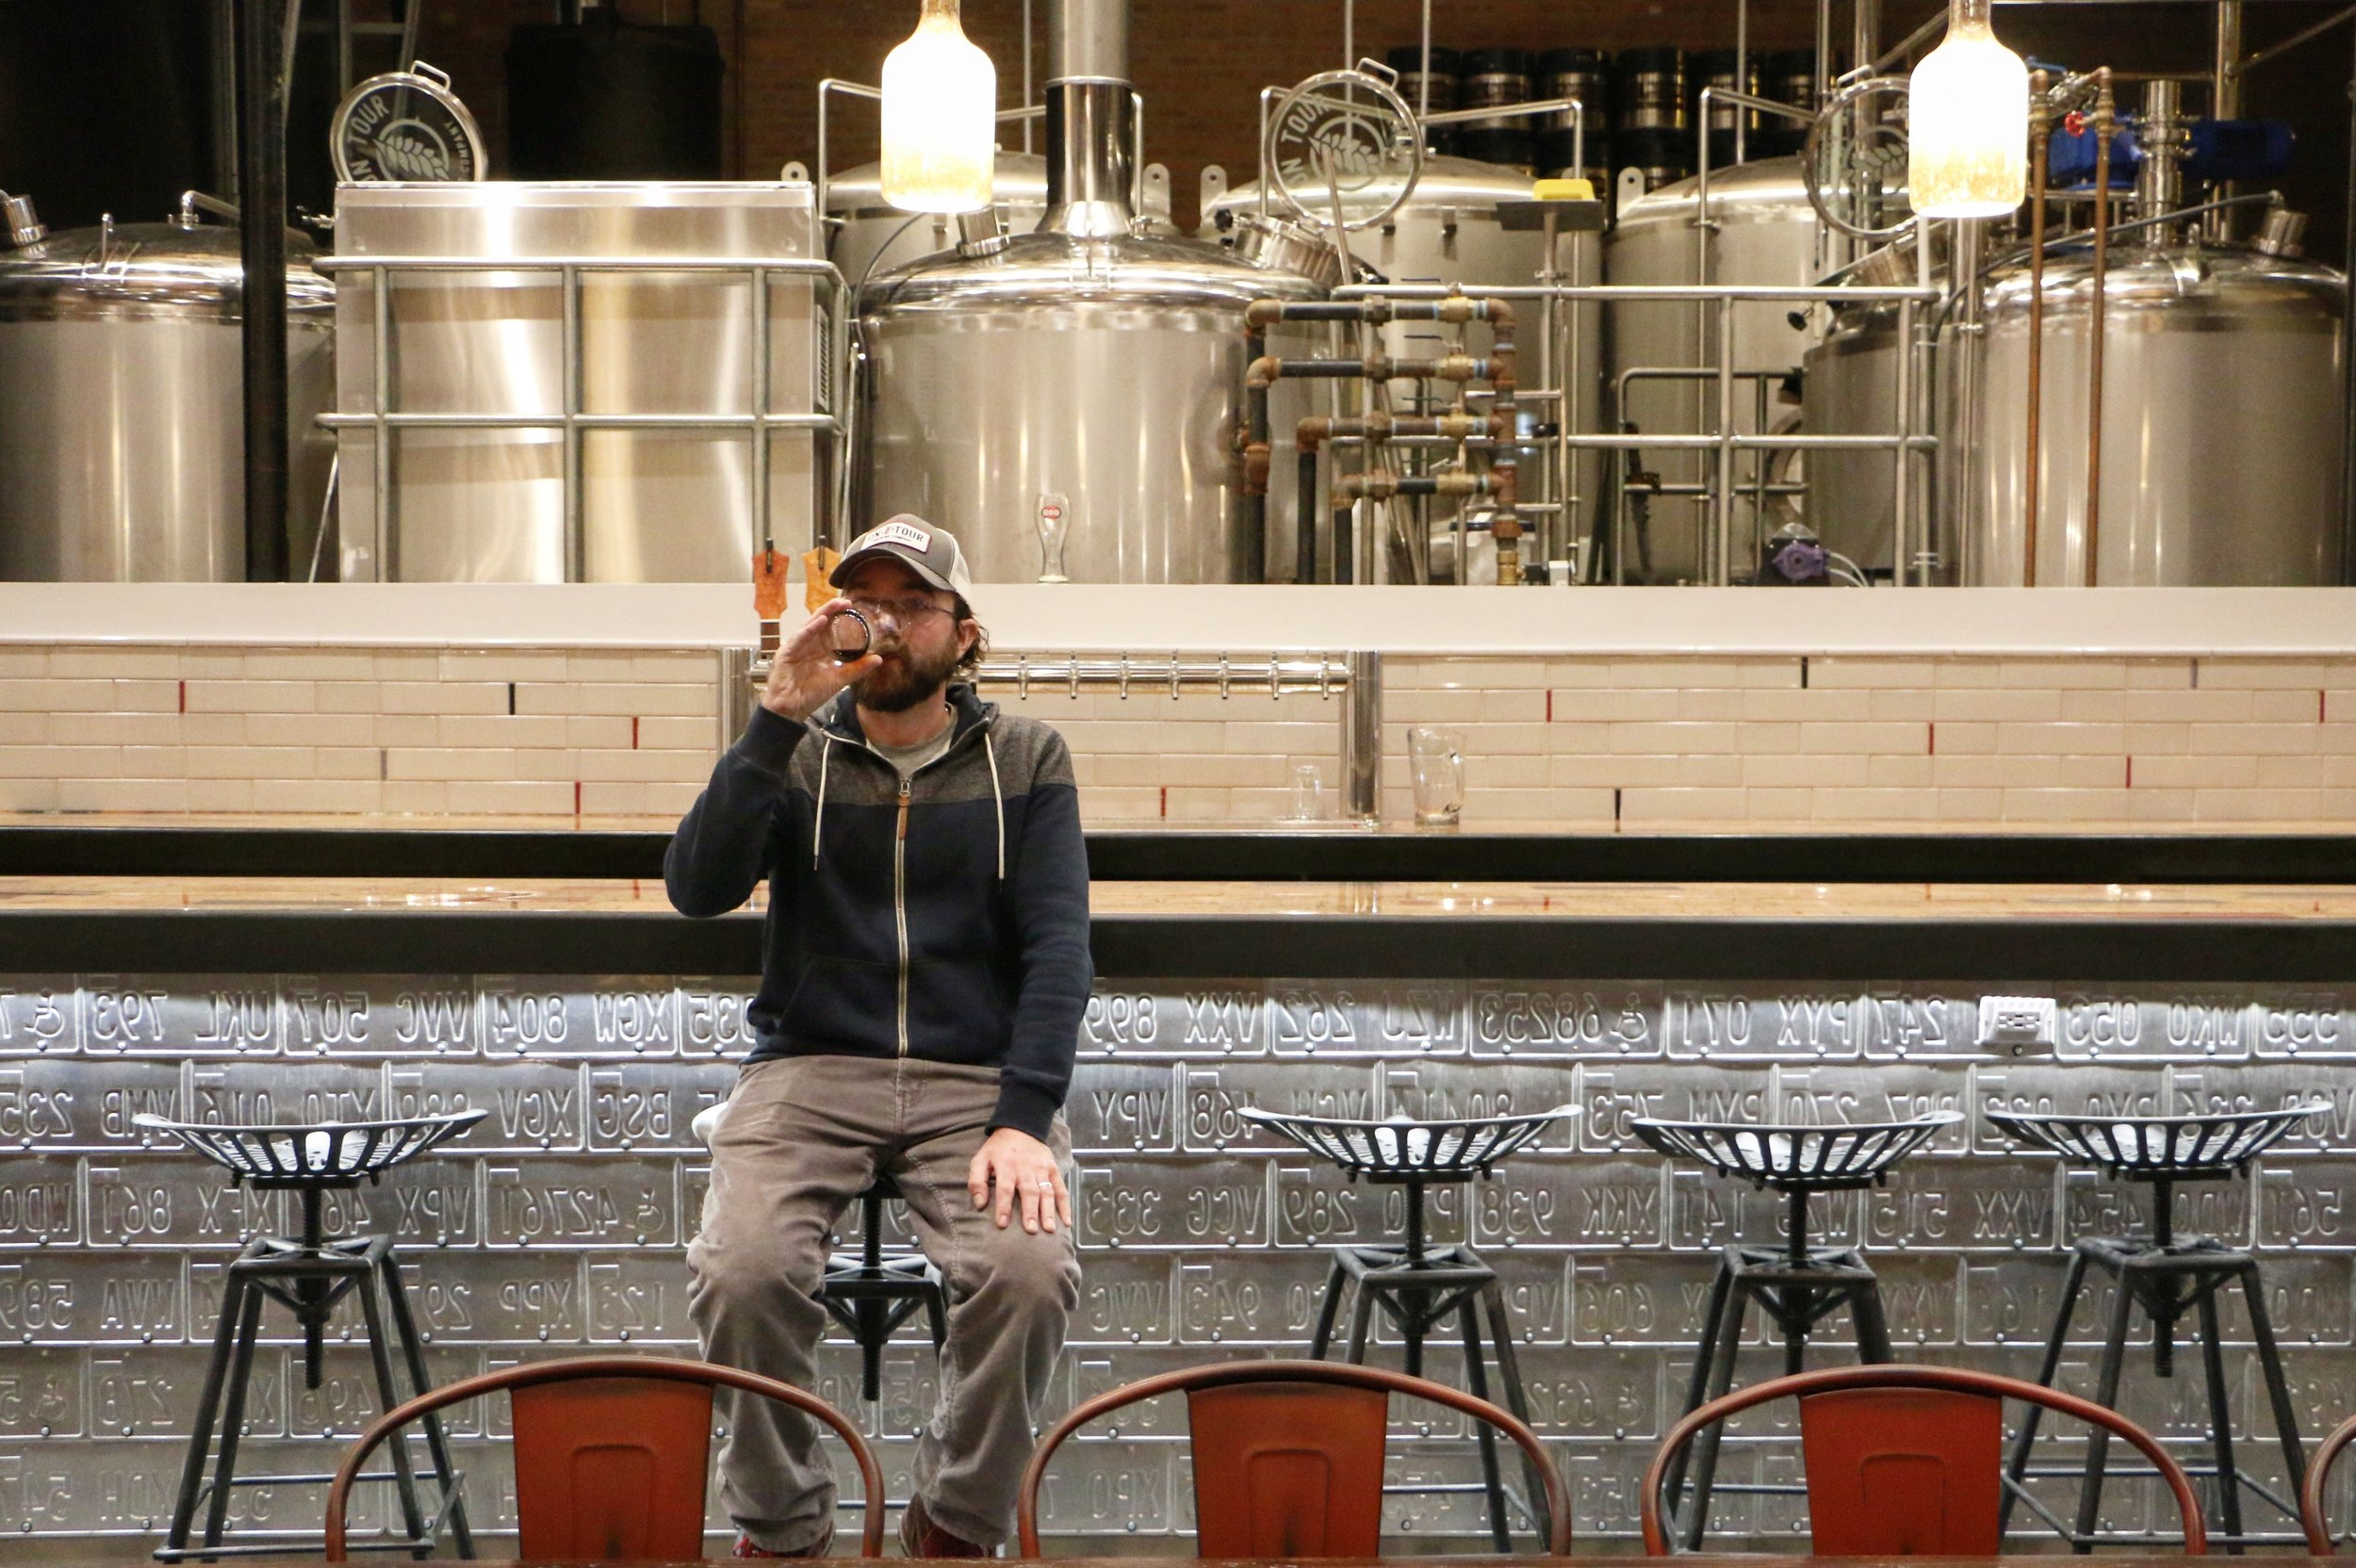 On Tour founder, Mark Legenza, sips a brown ale just prior to the opening of their taproom early '17